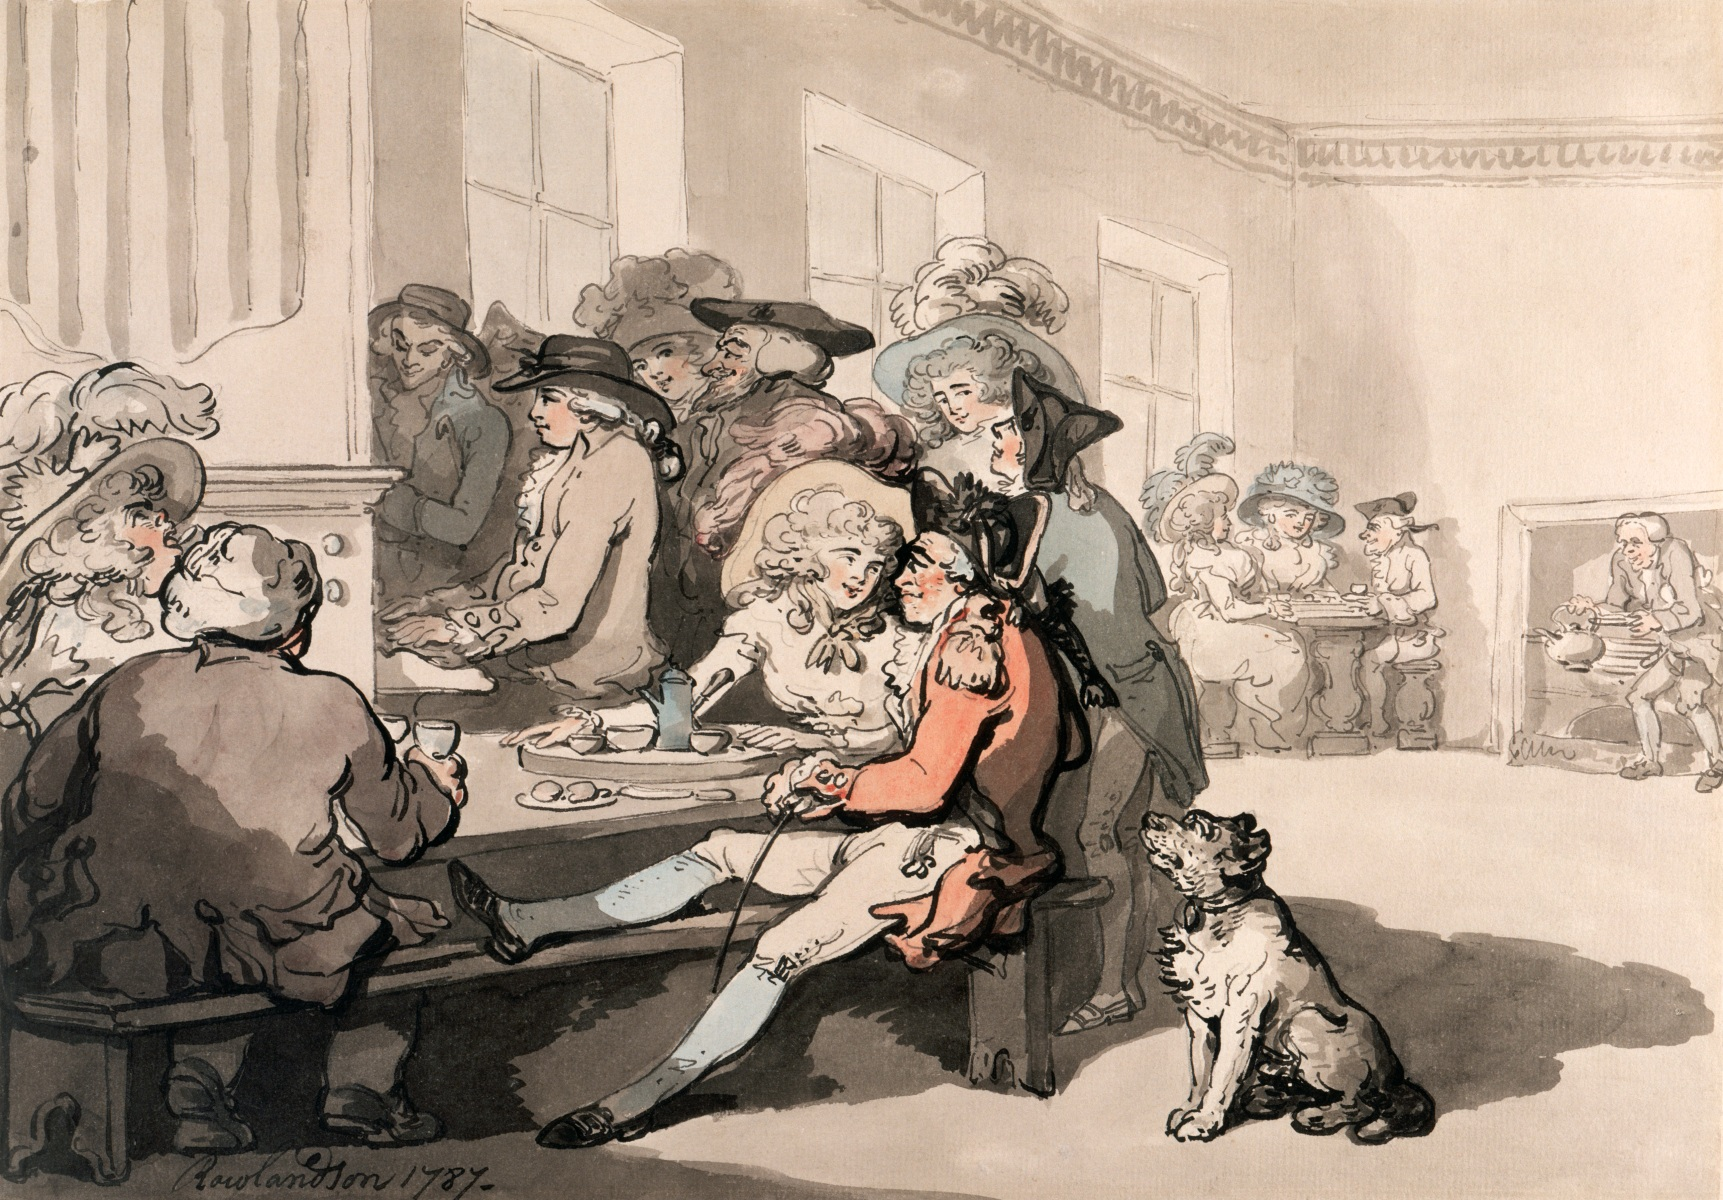 'The Chocolate House', 1787. People taking tea, coffee, and chocolate at the White Conduit House, Islington, London. A woman and a soldier flirt over a cup of chocolate in one of London's fashionable establishments. A dog waits anxiously as his master relaxes. An organist entertains the customers. (Photo by Museum of London/Heritage Images/Getty Images)